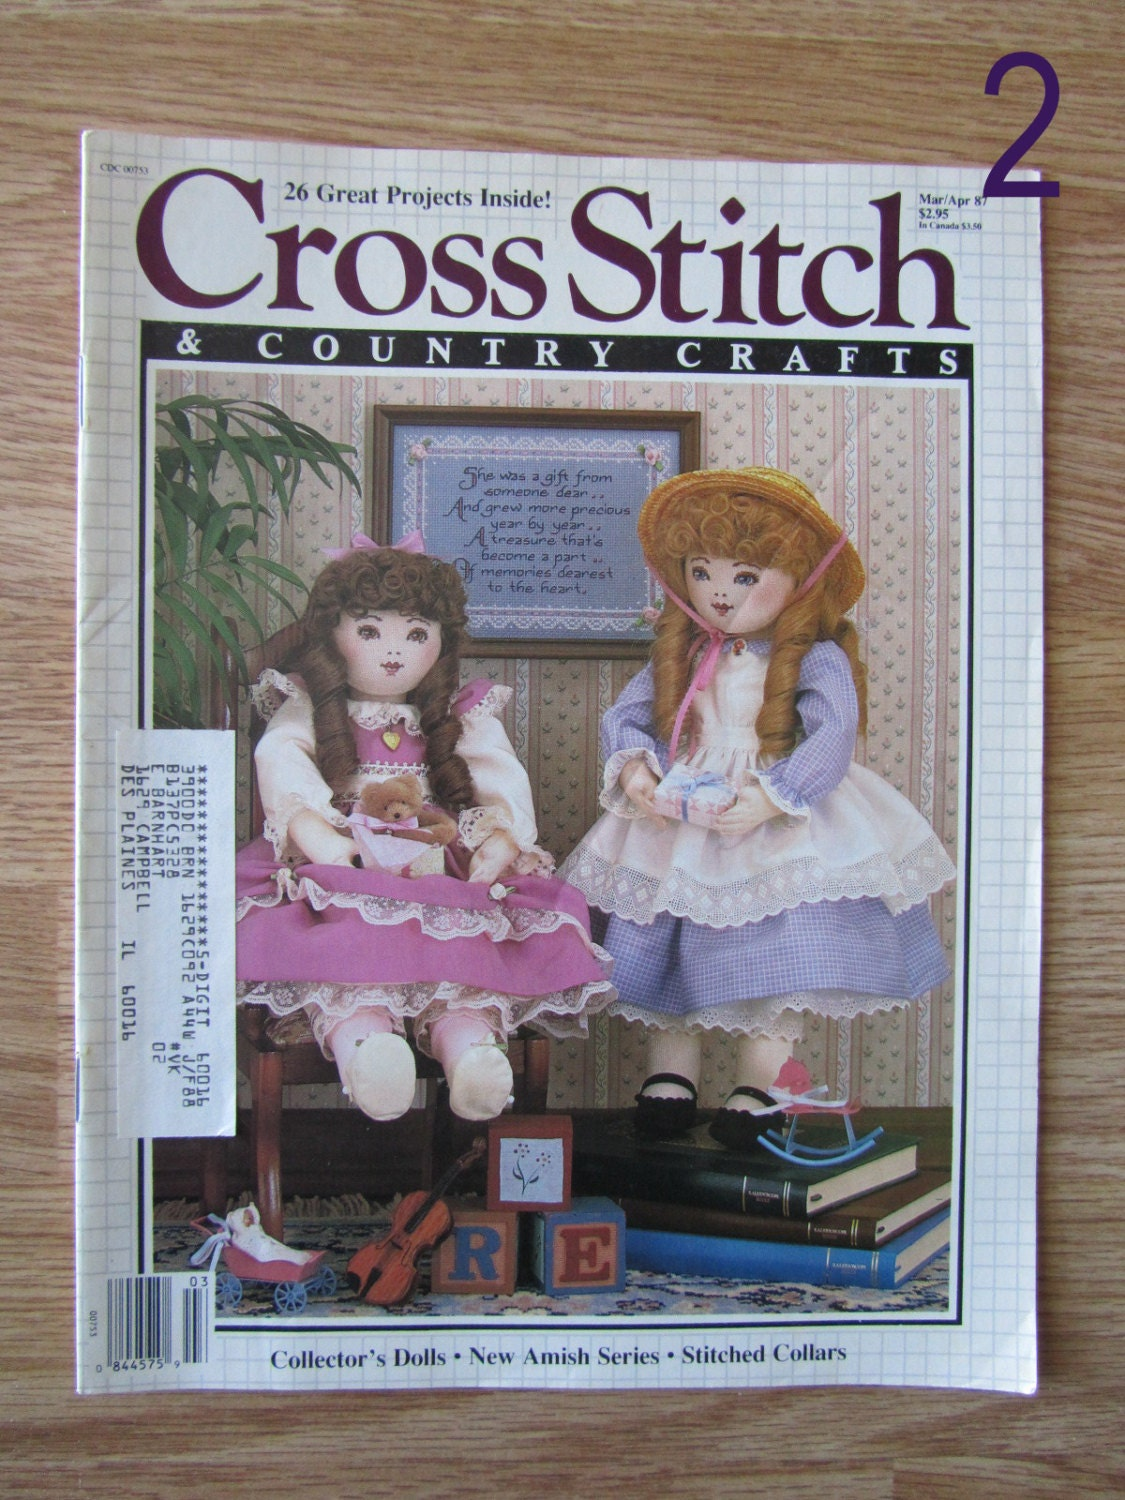 Cross stitch country crafts magazine back issues - Sold By Onceinlifetime